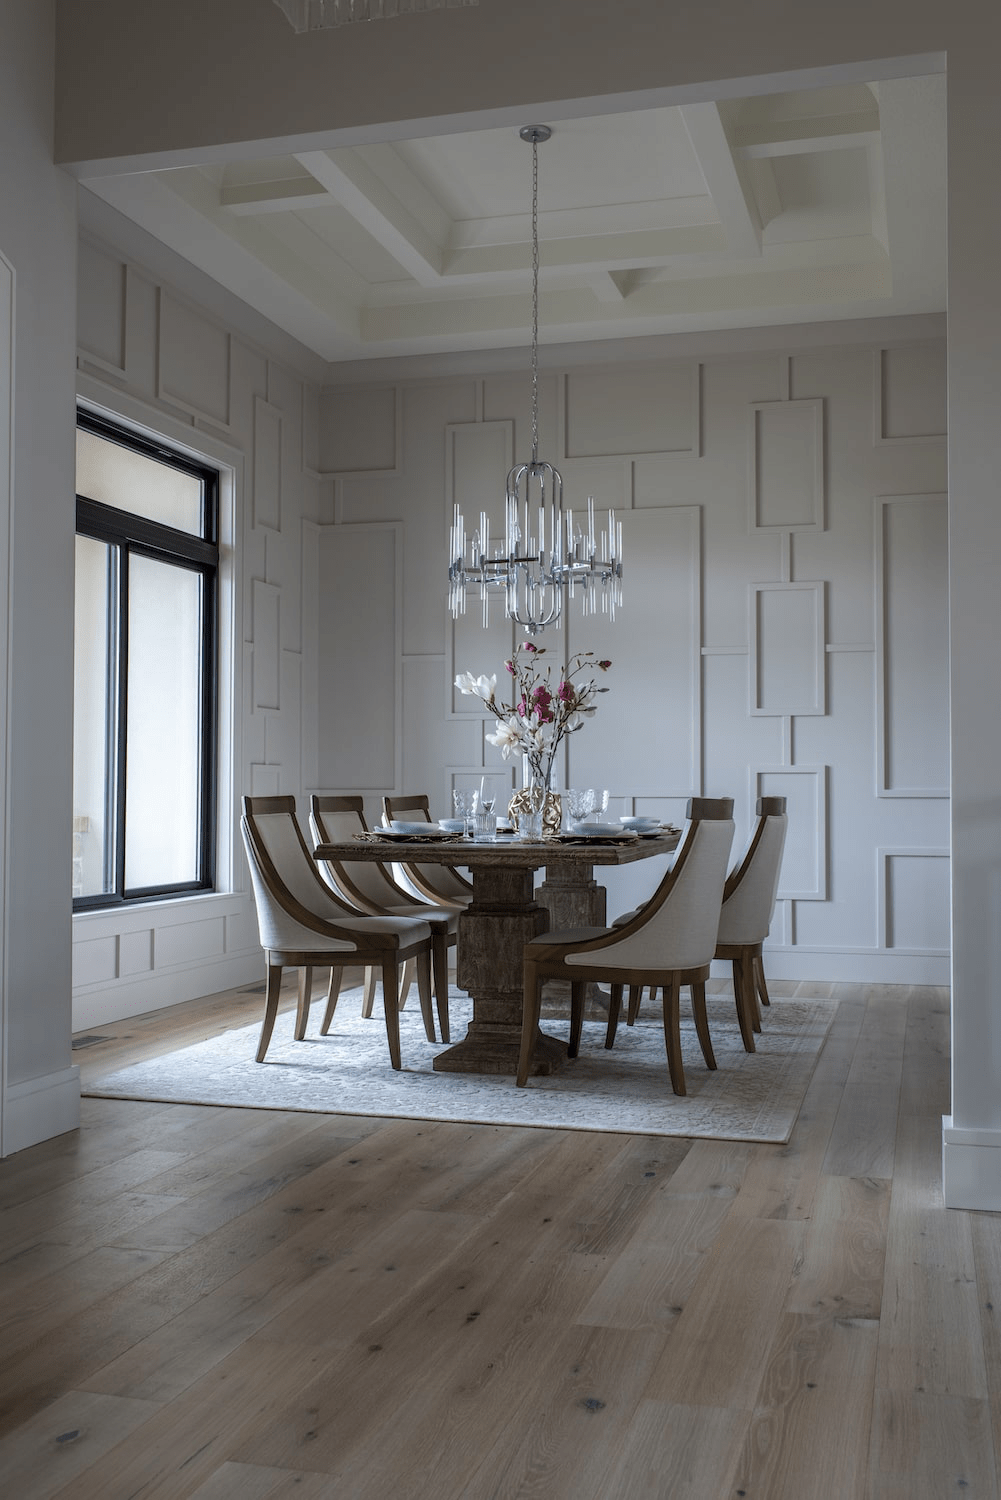 Dining room flooring | Johnston Paint & Decorating